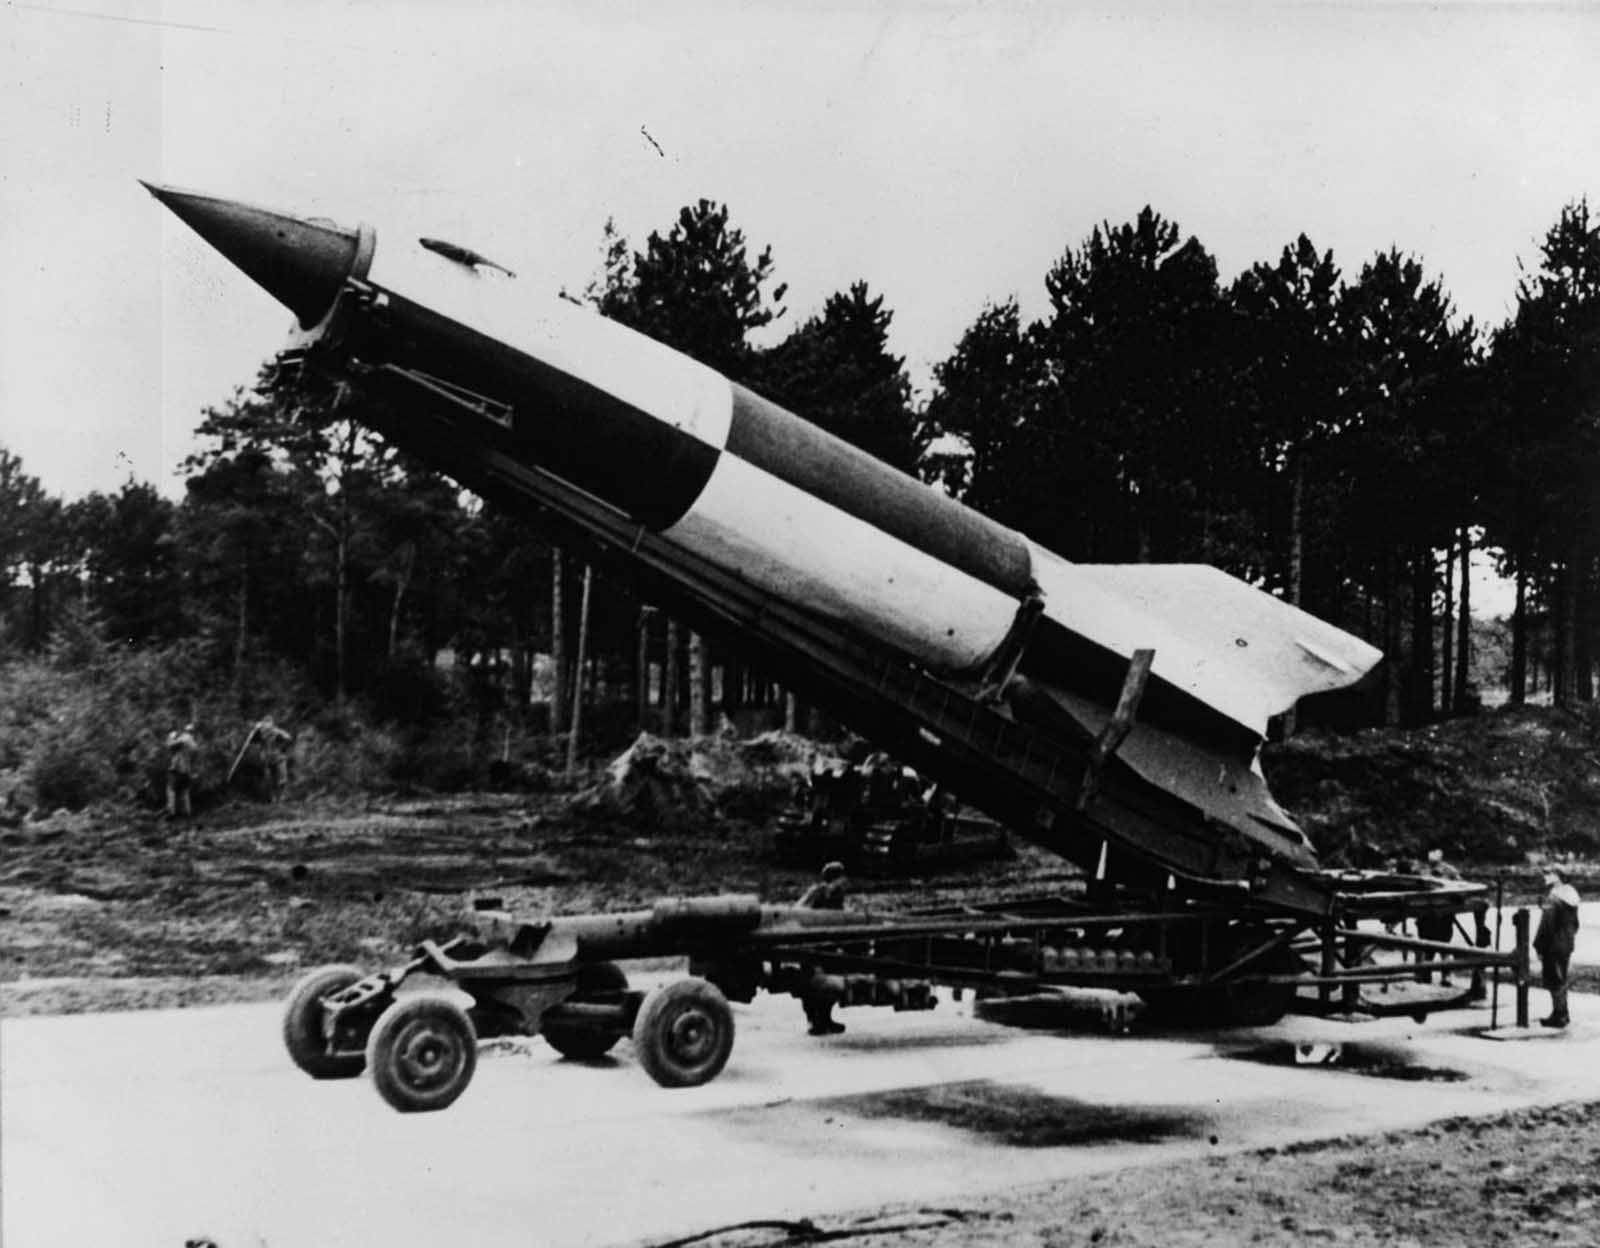 V-2 rockets in pictures, 1944-1945